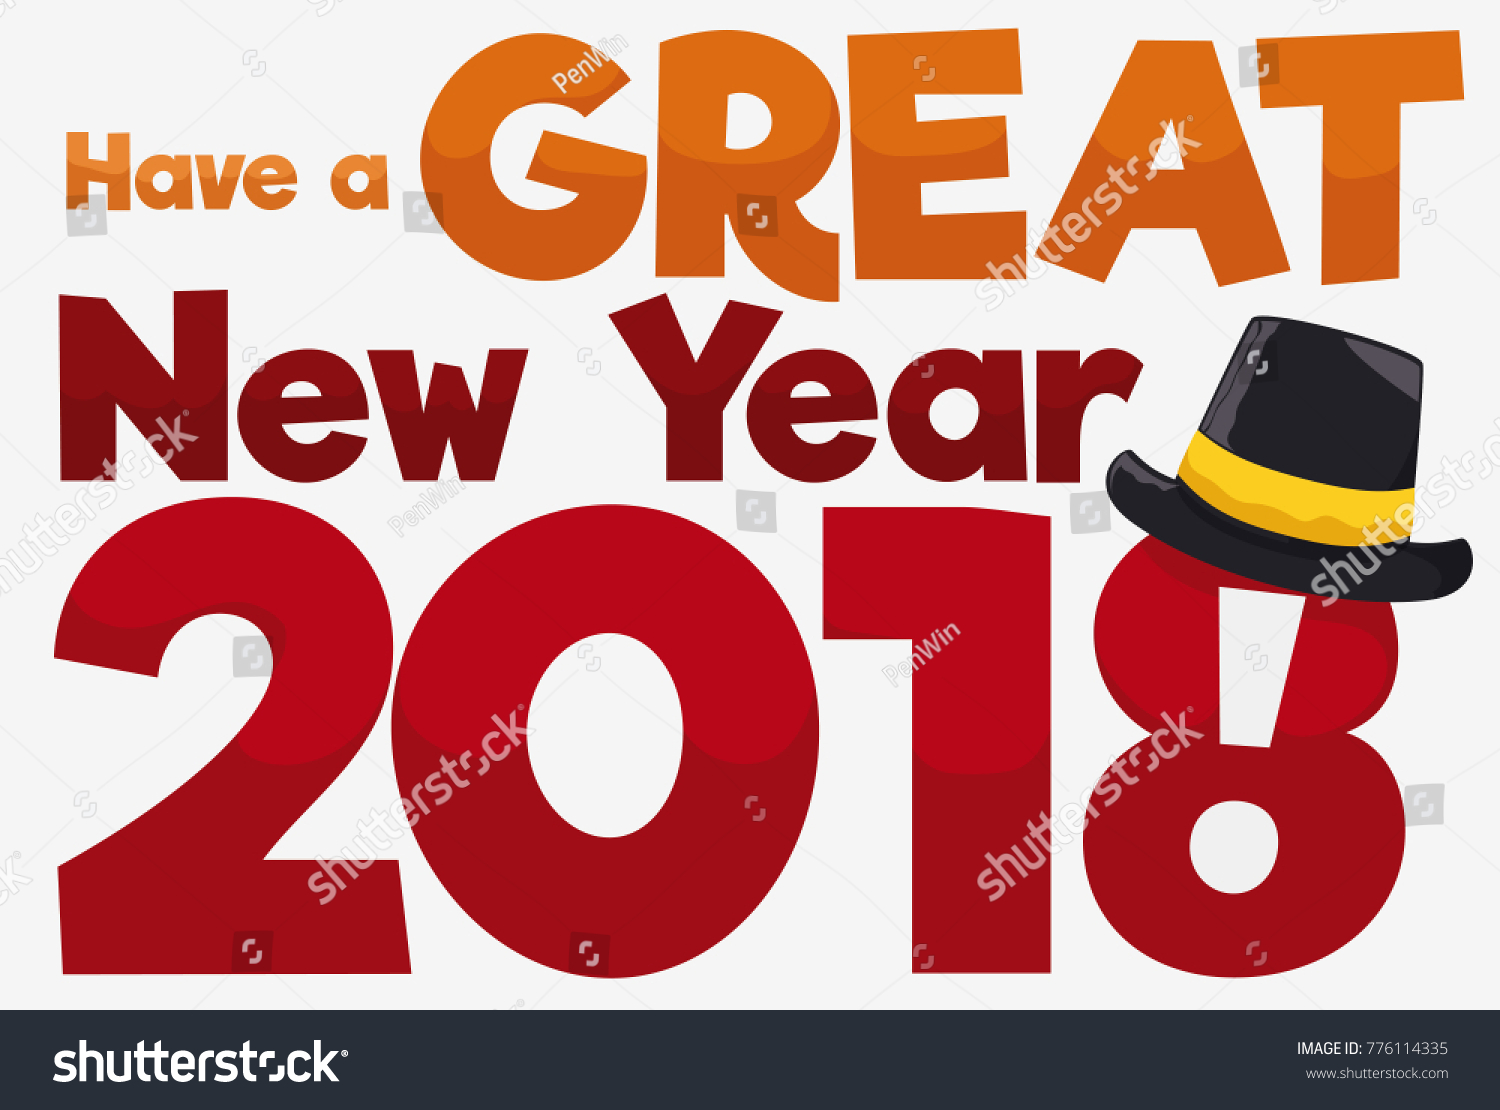 Poster greeting message festive hat upcoming stock vector 776114335 poster with greeting message and festive hat for the upcoming year 2018 m4hsunfo